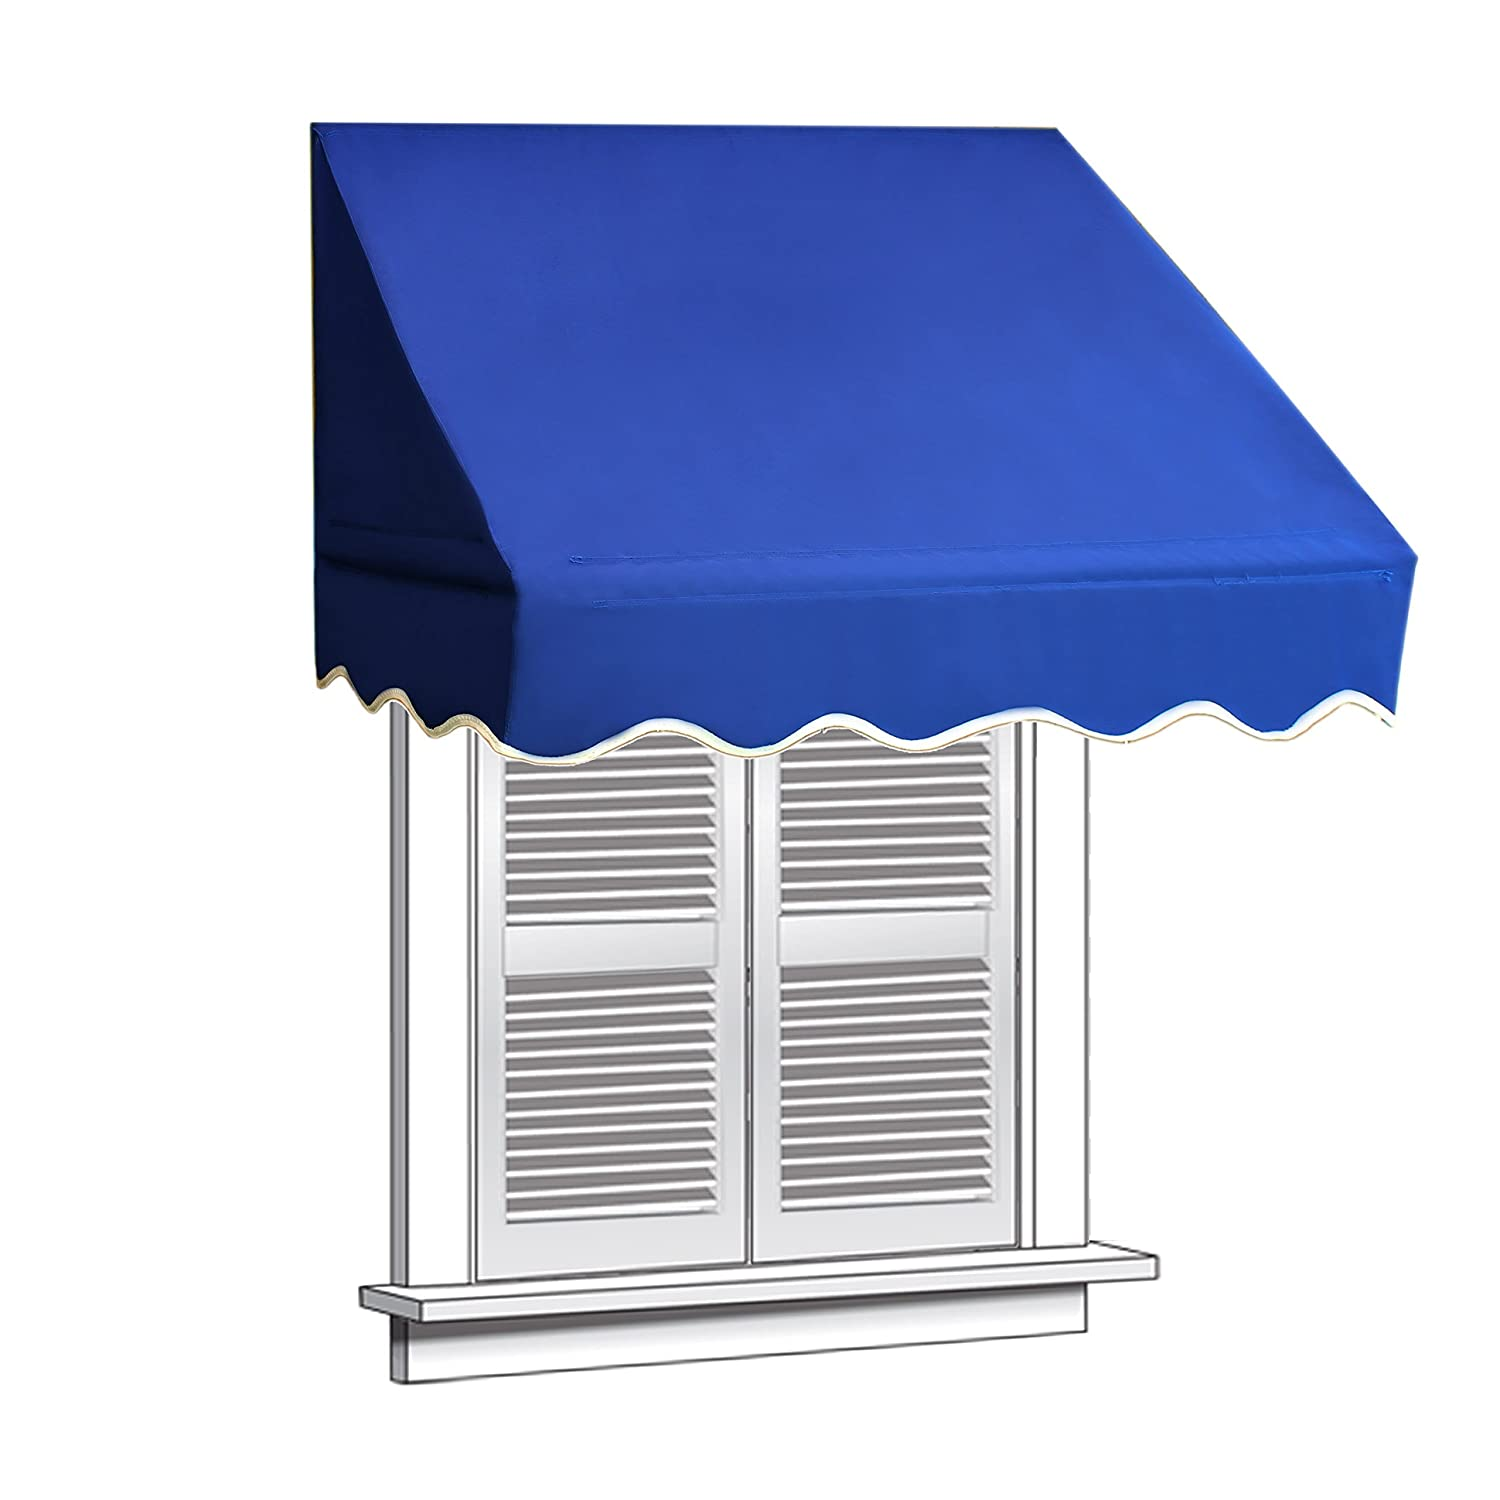 ALEKO 4x2 Blue Window Awning Door Canopy 4-Foot Decorator Awning - - Amazon.com  sc 1 st  Amazon.com & ALEKO 4x2 Blue Window Awning Door Canopy 4-Foot Decorator Awning ...